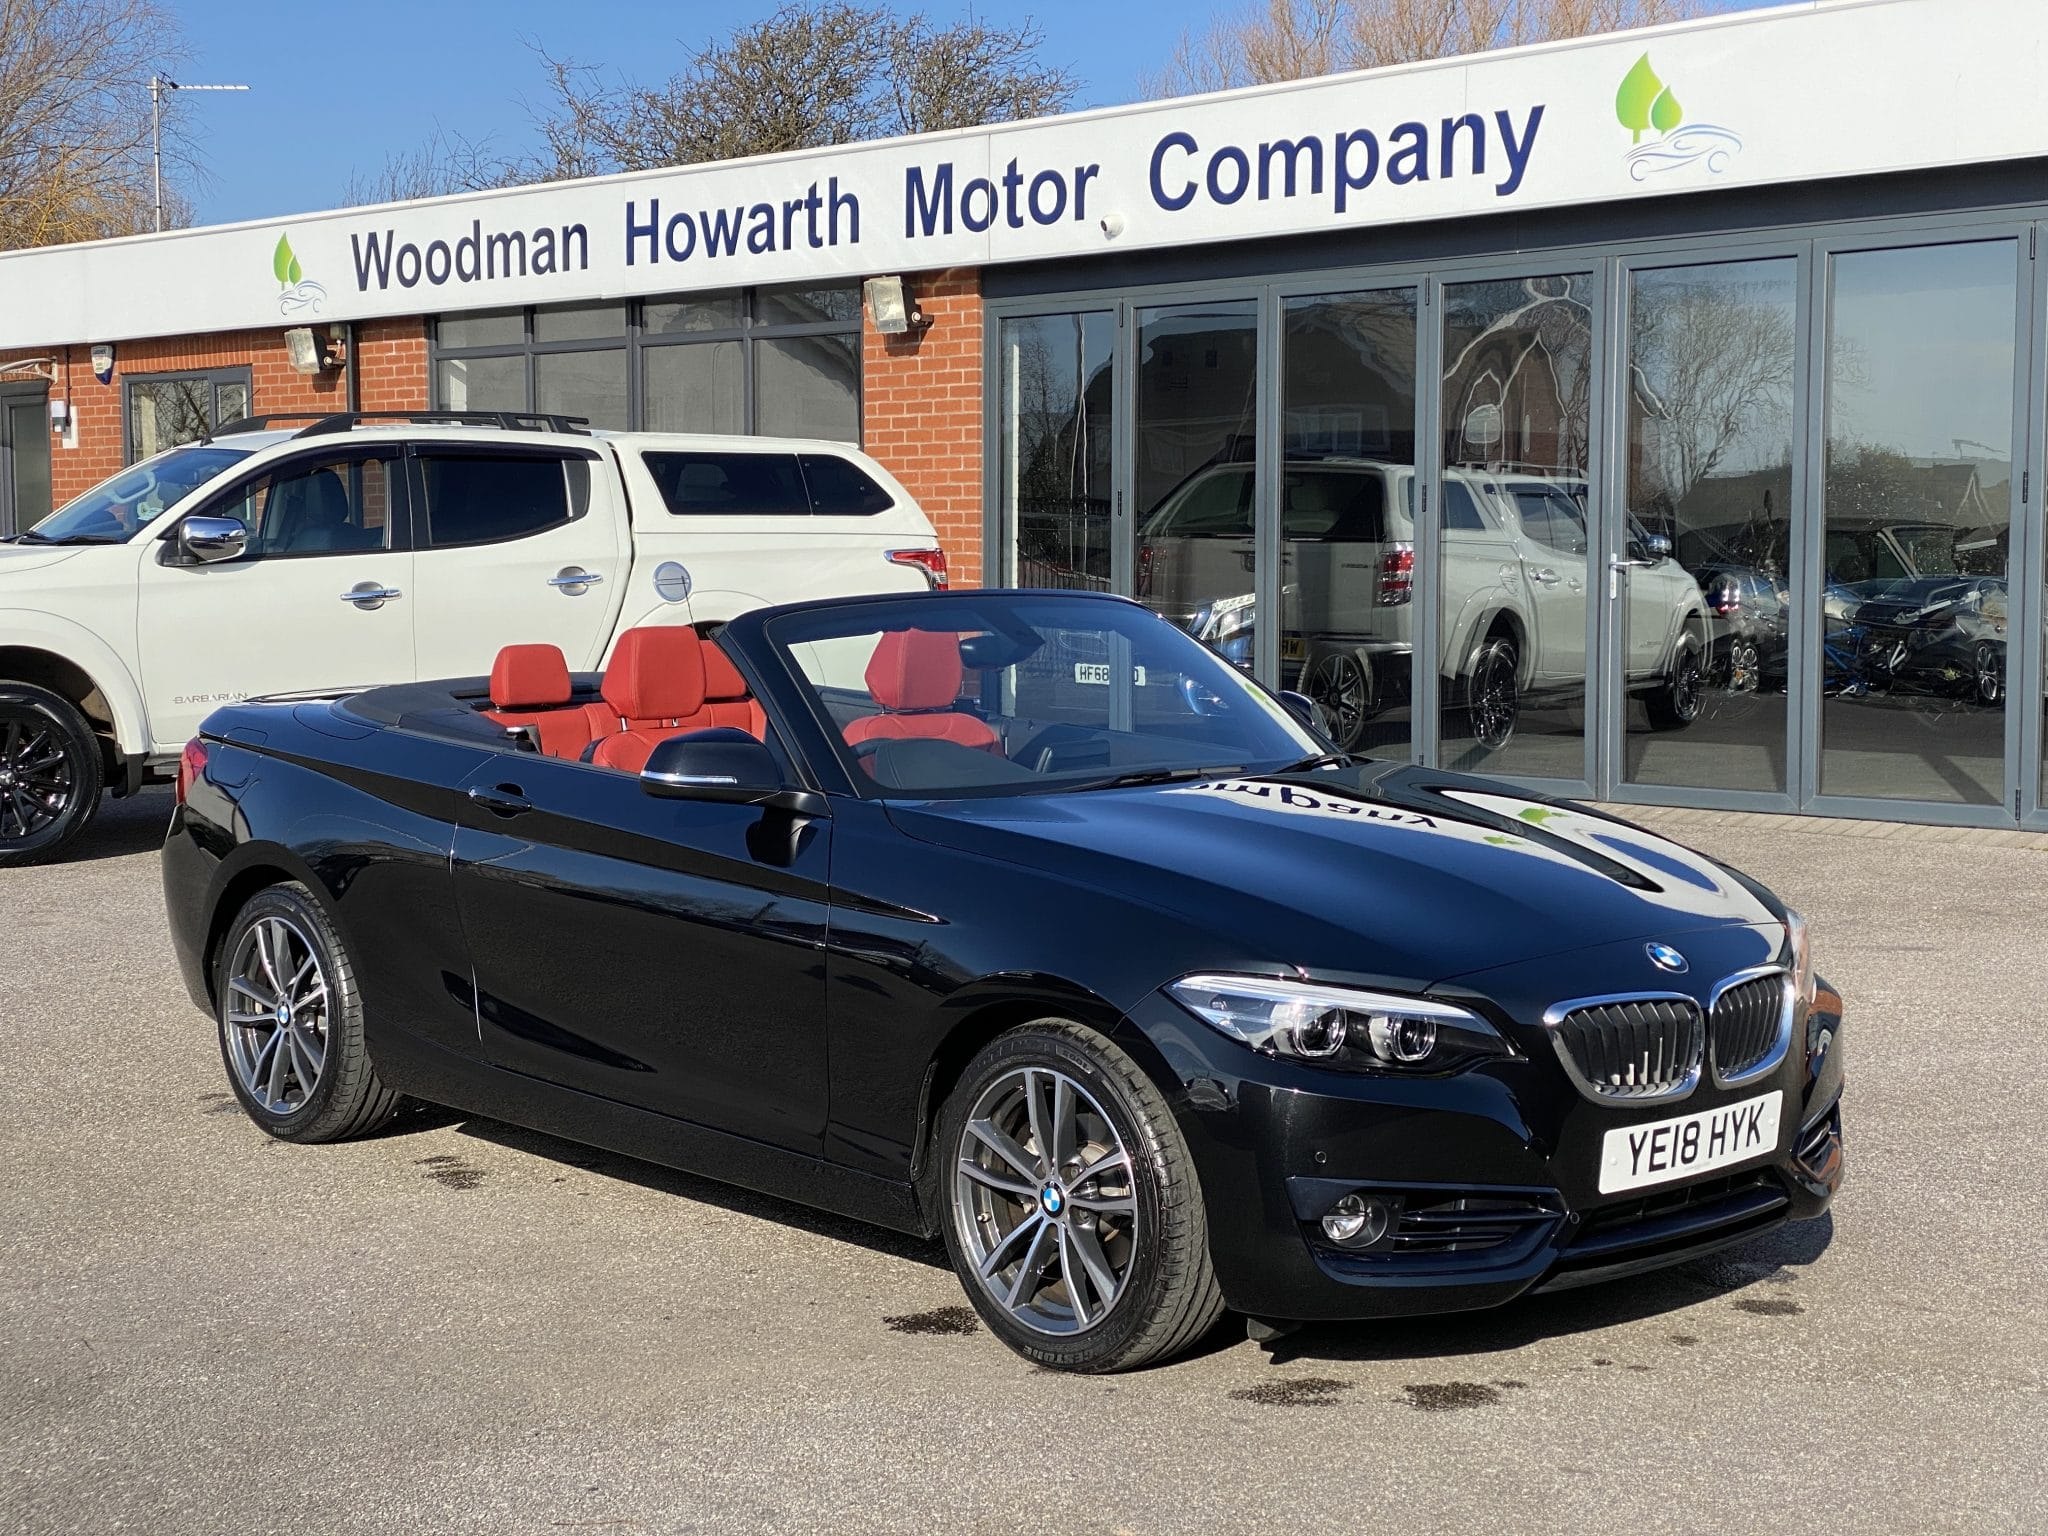 2018 18 BMW 218i SPORT AUTO CONVERTIBLE 1.5 136 BHP Full Leather ONLY 3500 Miles Nav Rare Auto